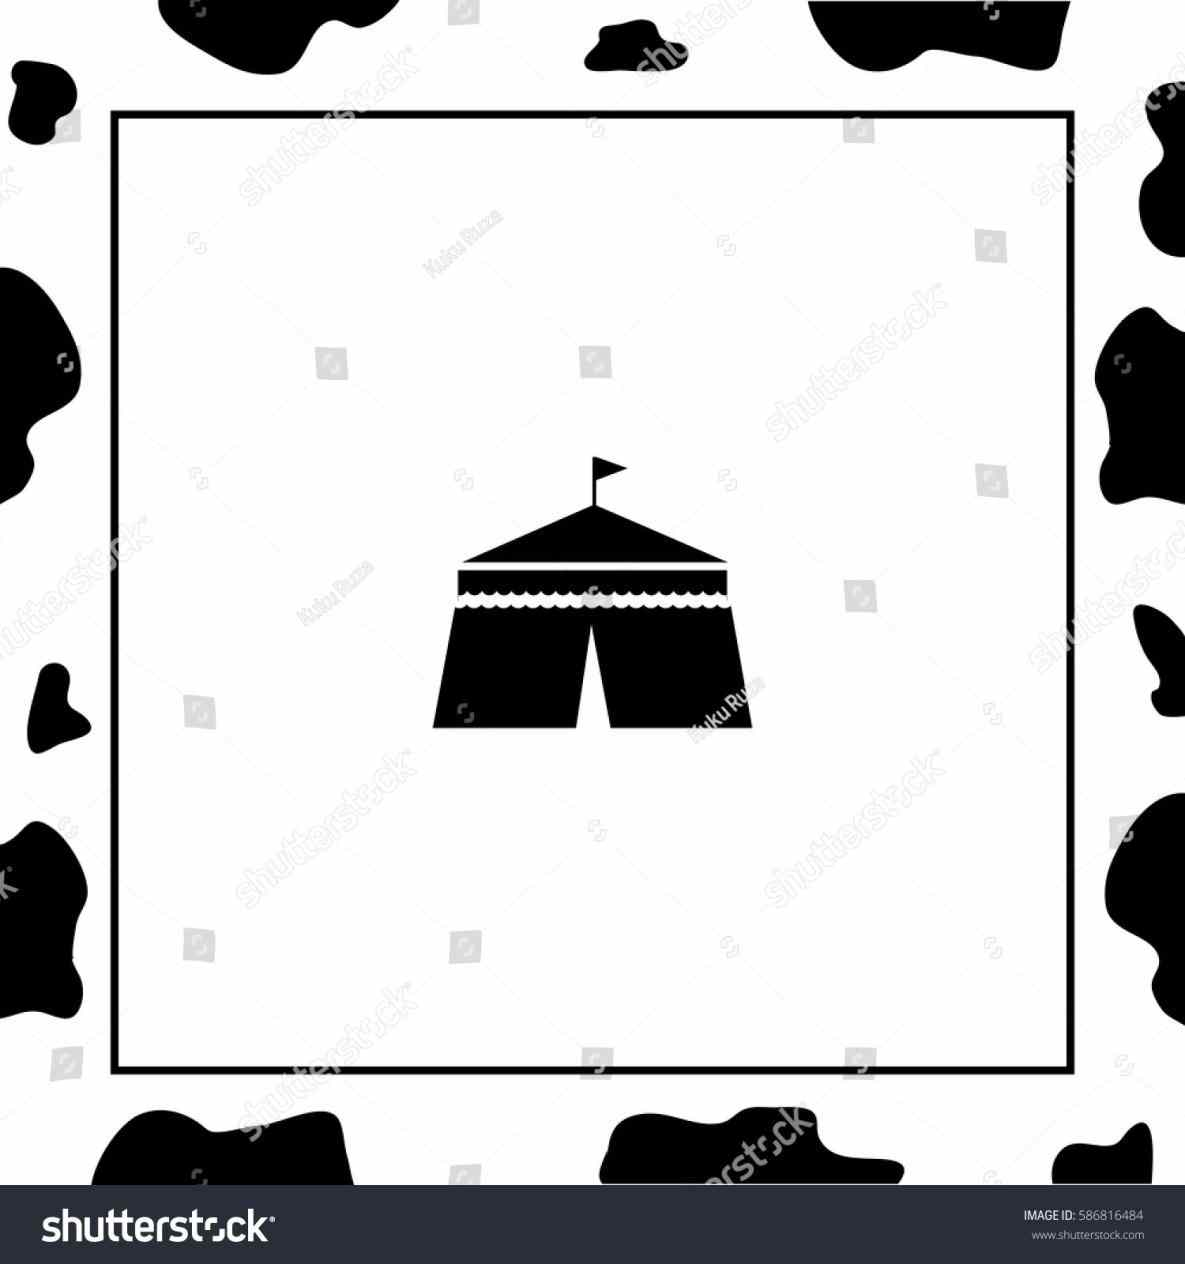 1185x1264 Circus Tent Silhouette